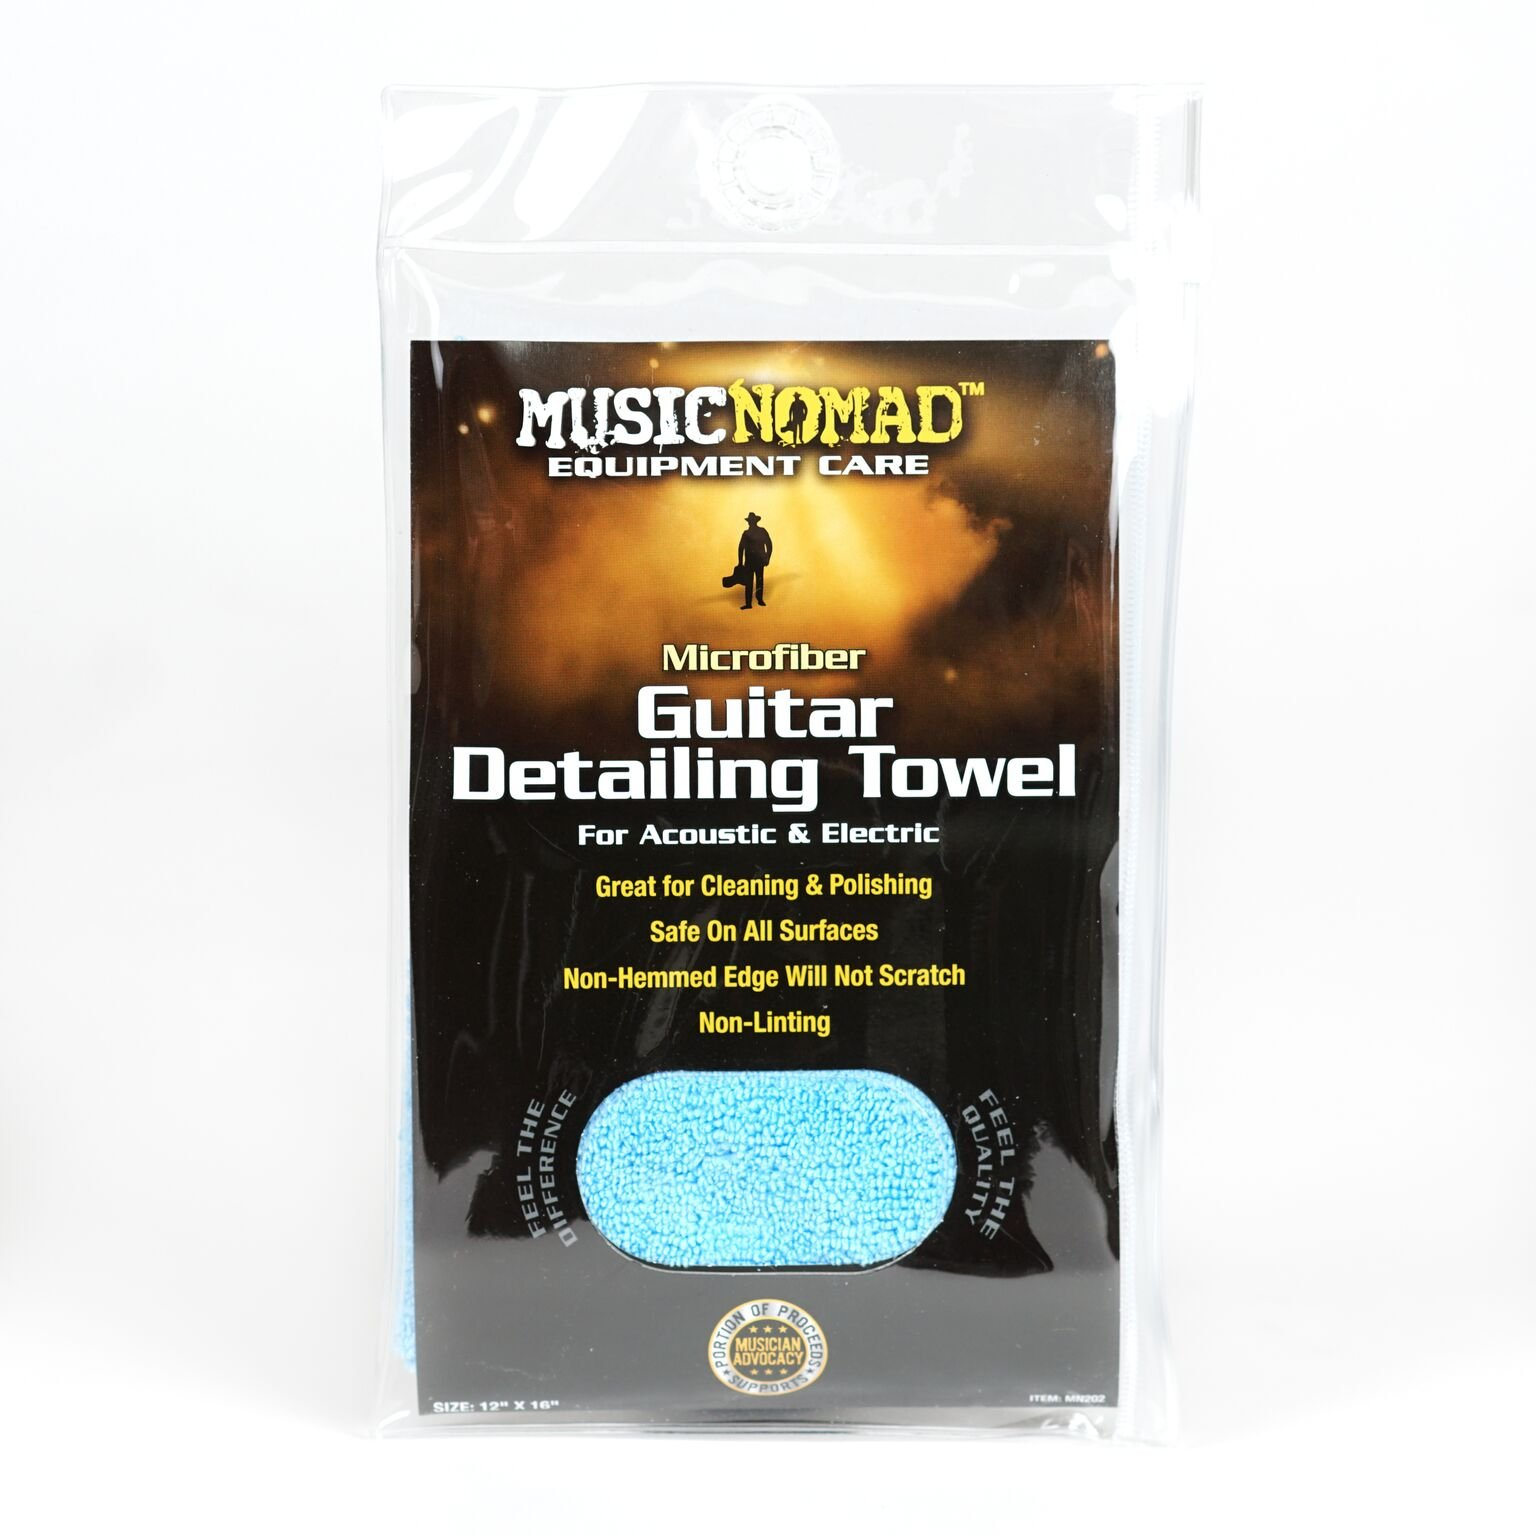 Music Nomad Microfiber Guitar Polishing Cloth